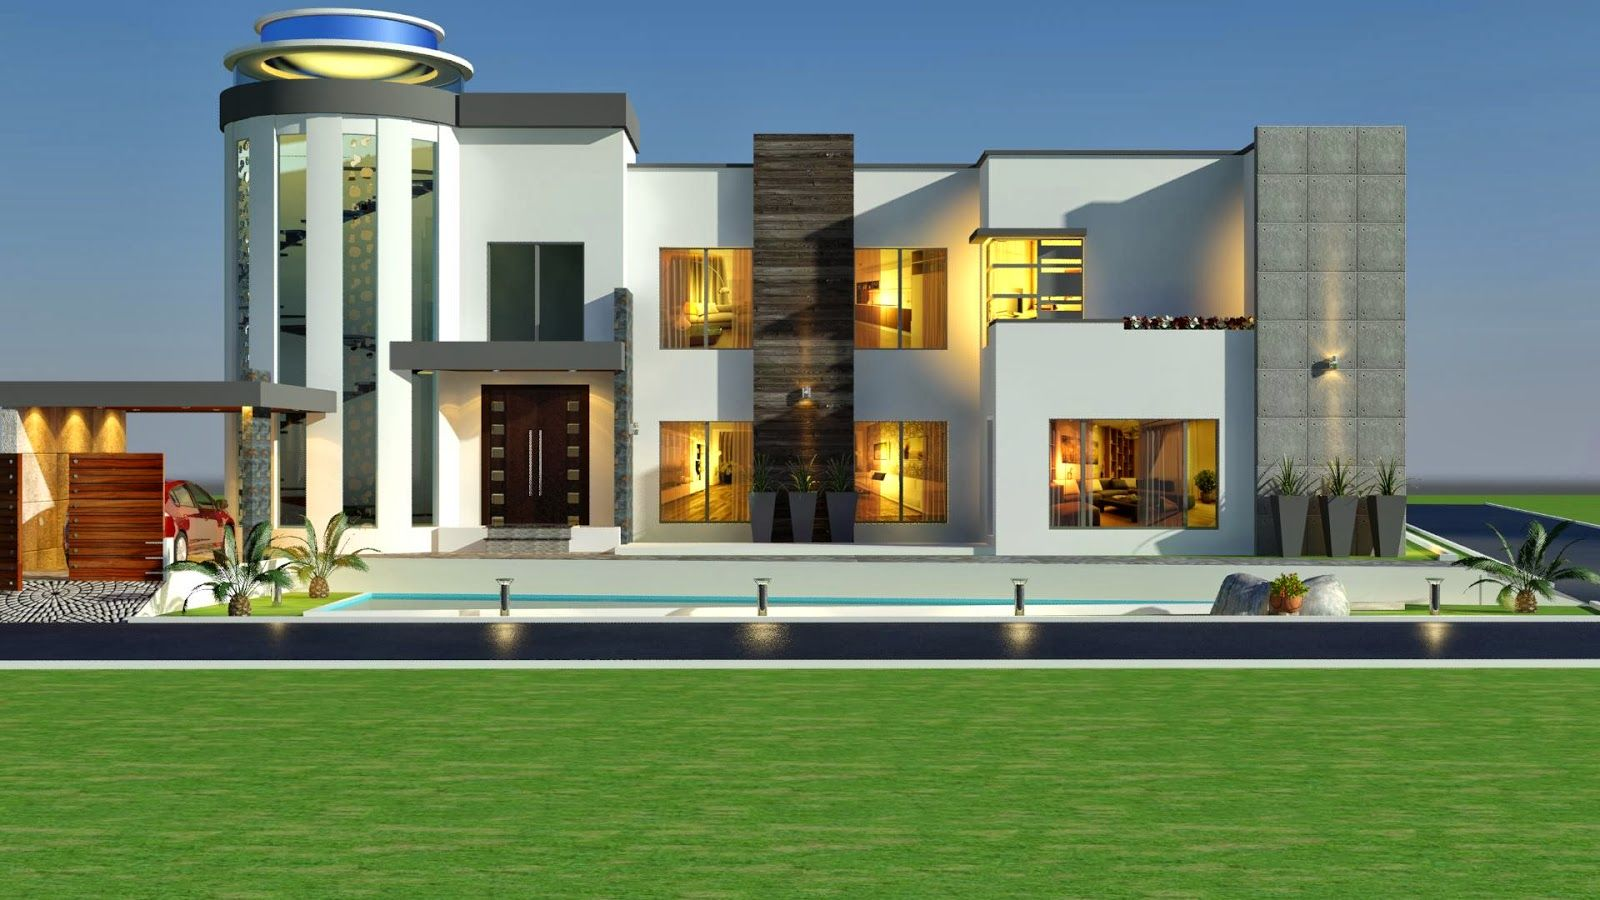 Villa house 2014 3d front elevation kanal modern for Best house design 2014